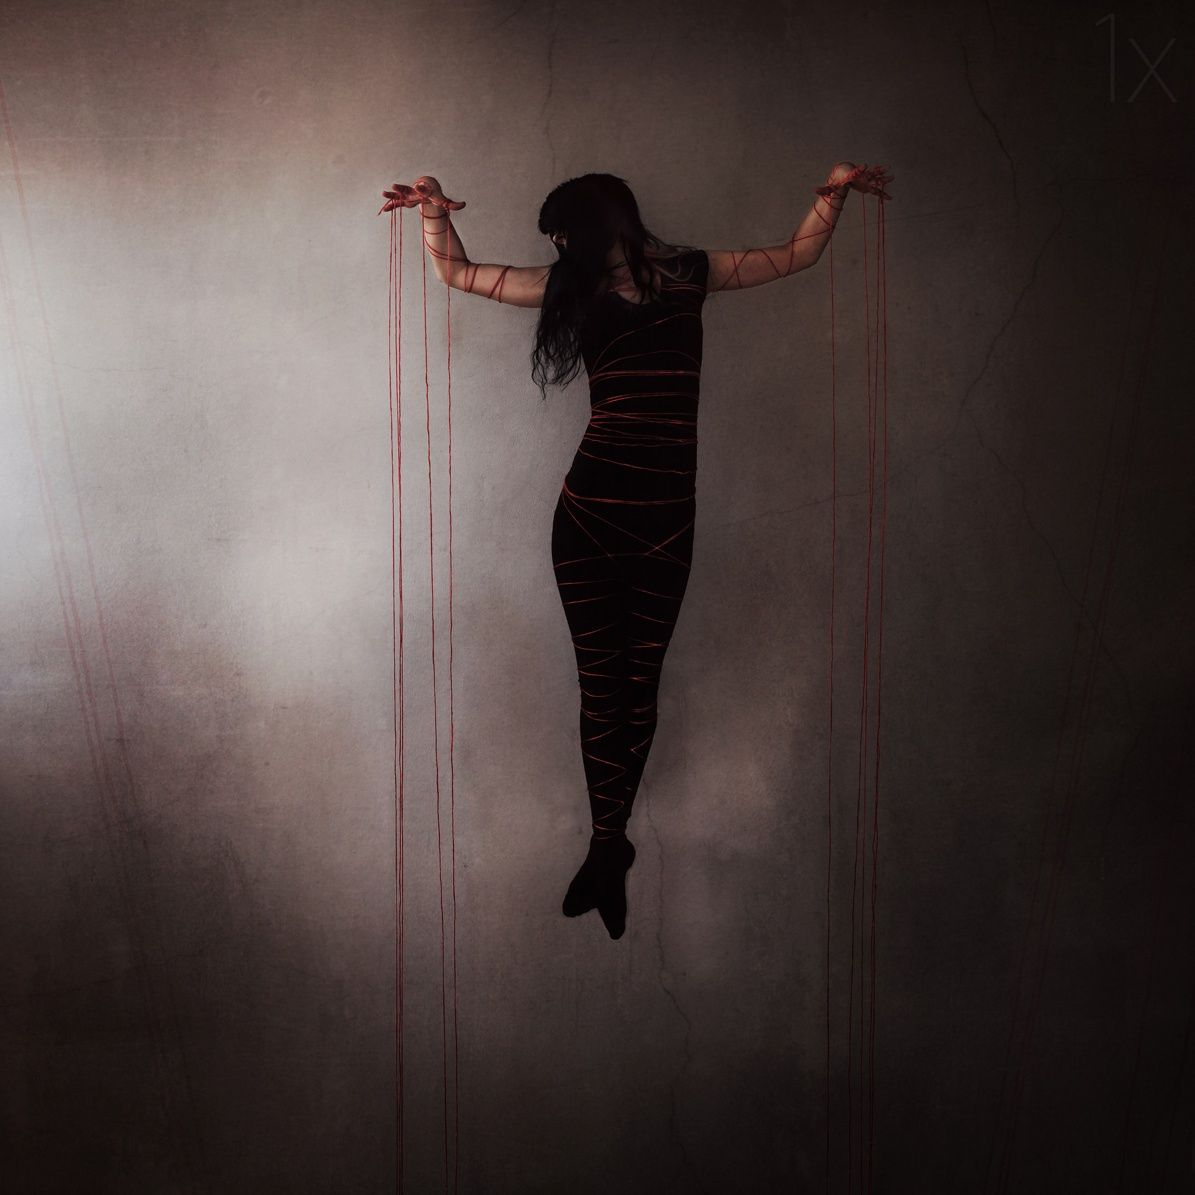 The Puppeteer by Anja Matko